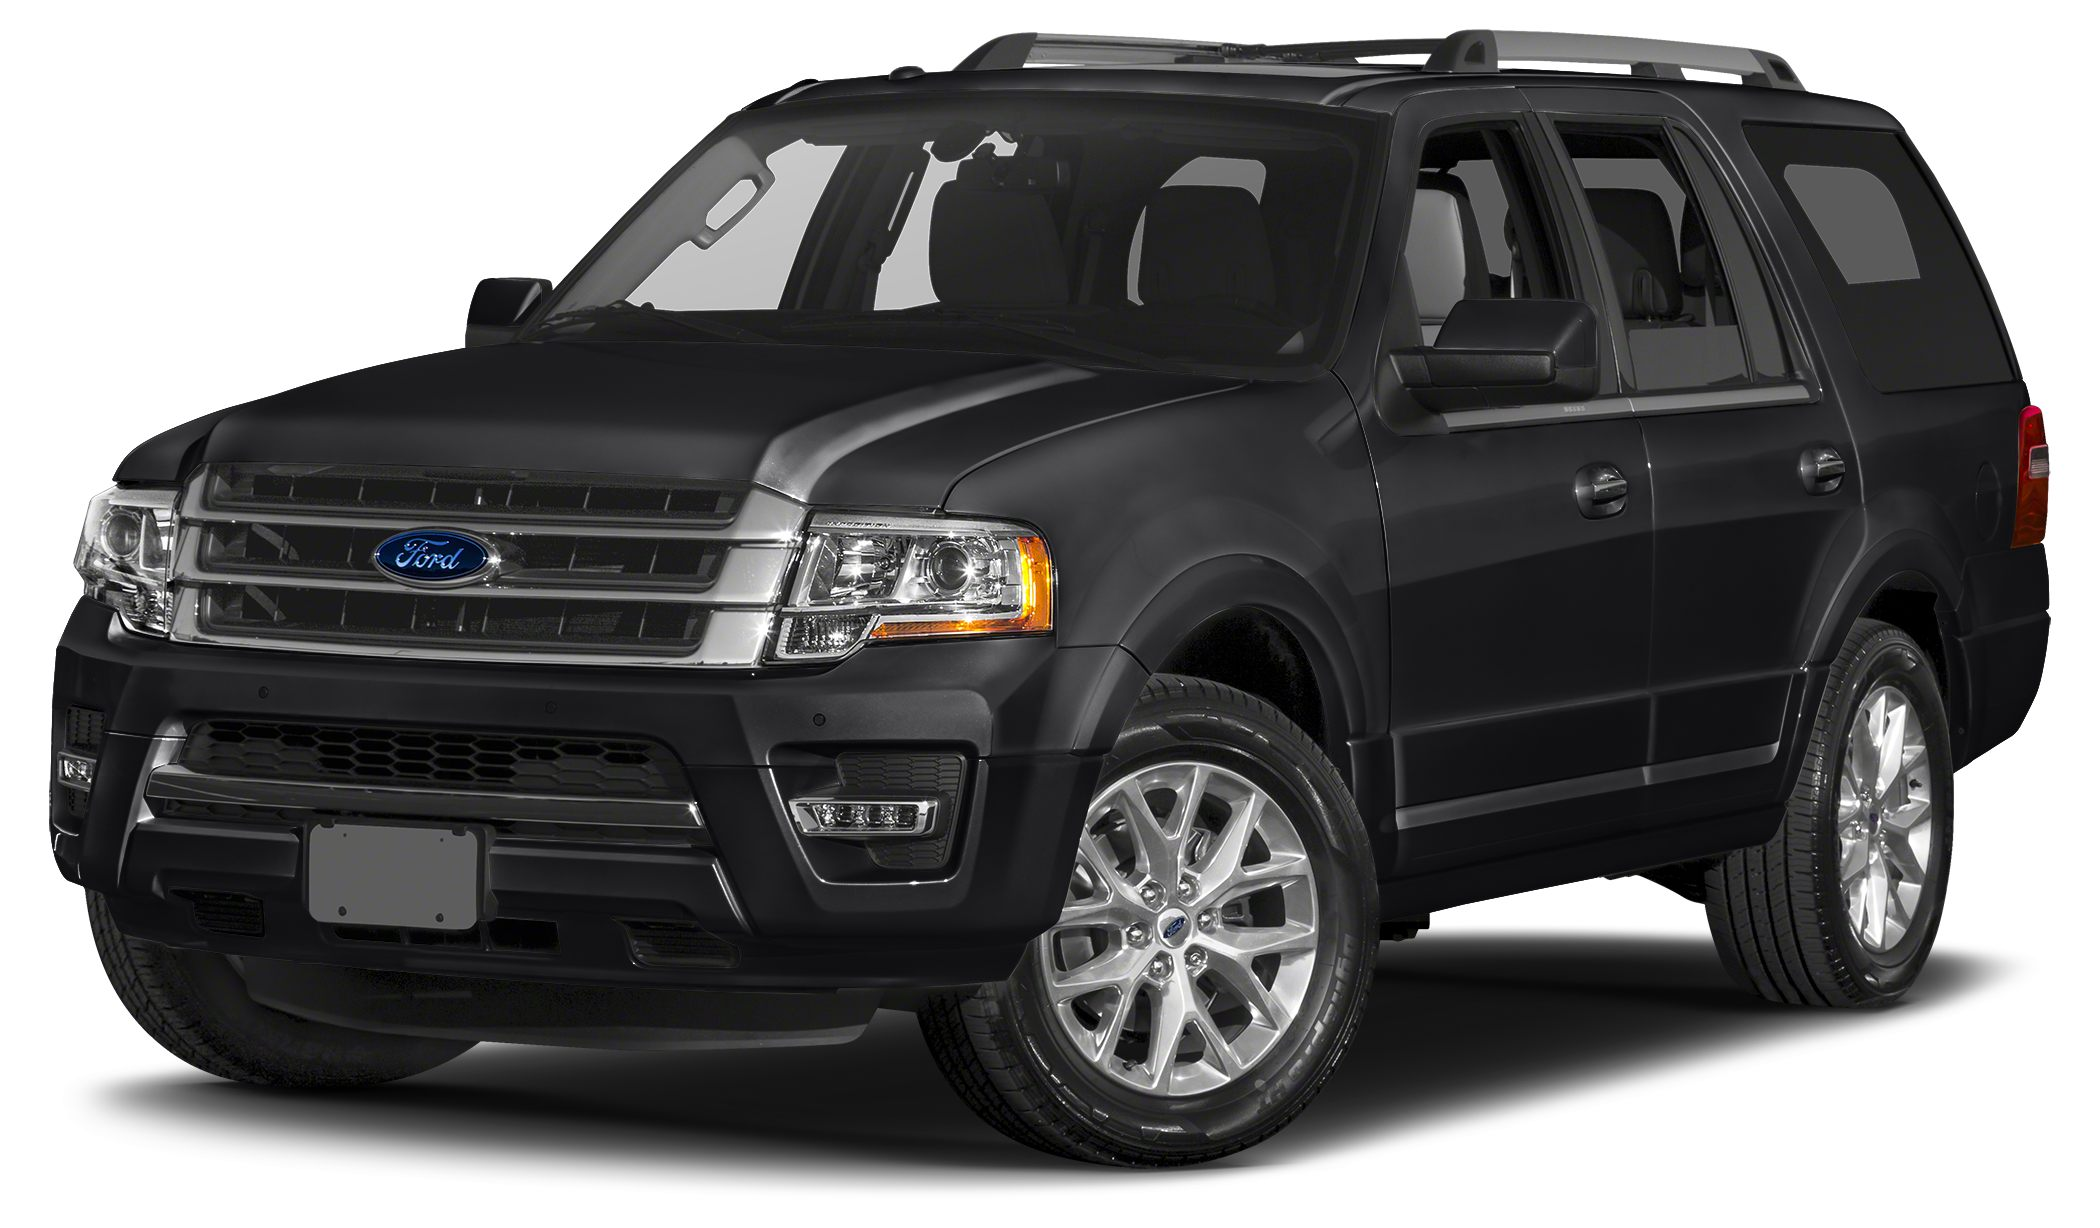 2016 Ford Expedition Limited The 2016 Ford Expedition features a new aggressive front end creates